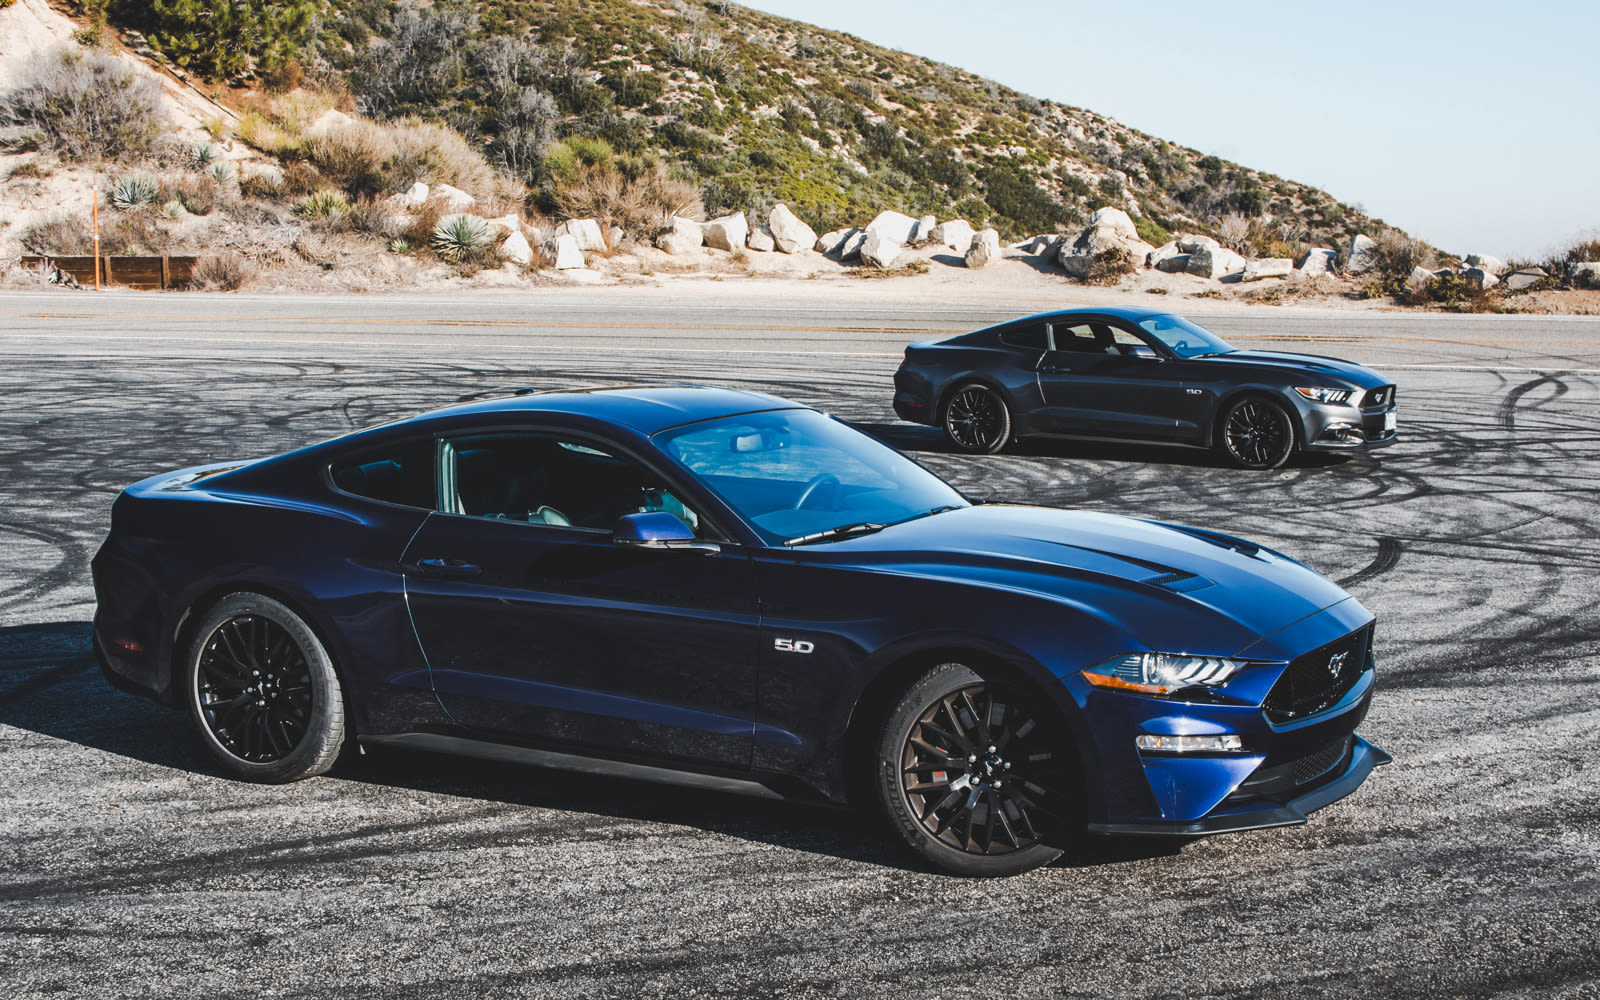 2017 Vs 2018 Mustang >> 2017 Vs 2018 Mustang Comparing The Old S550 And The Refresh